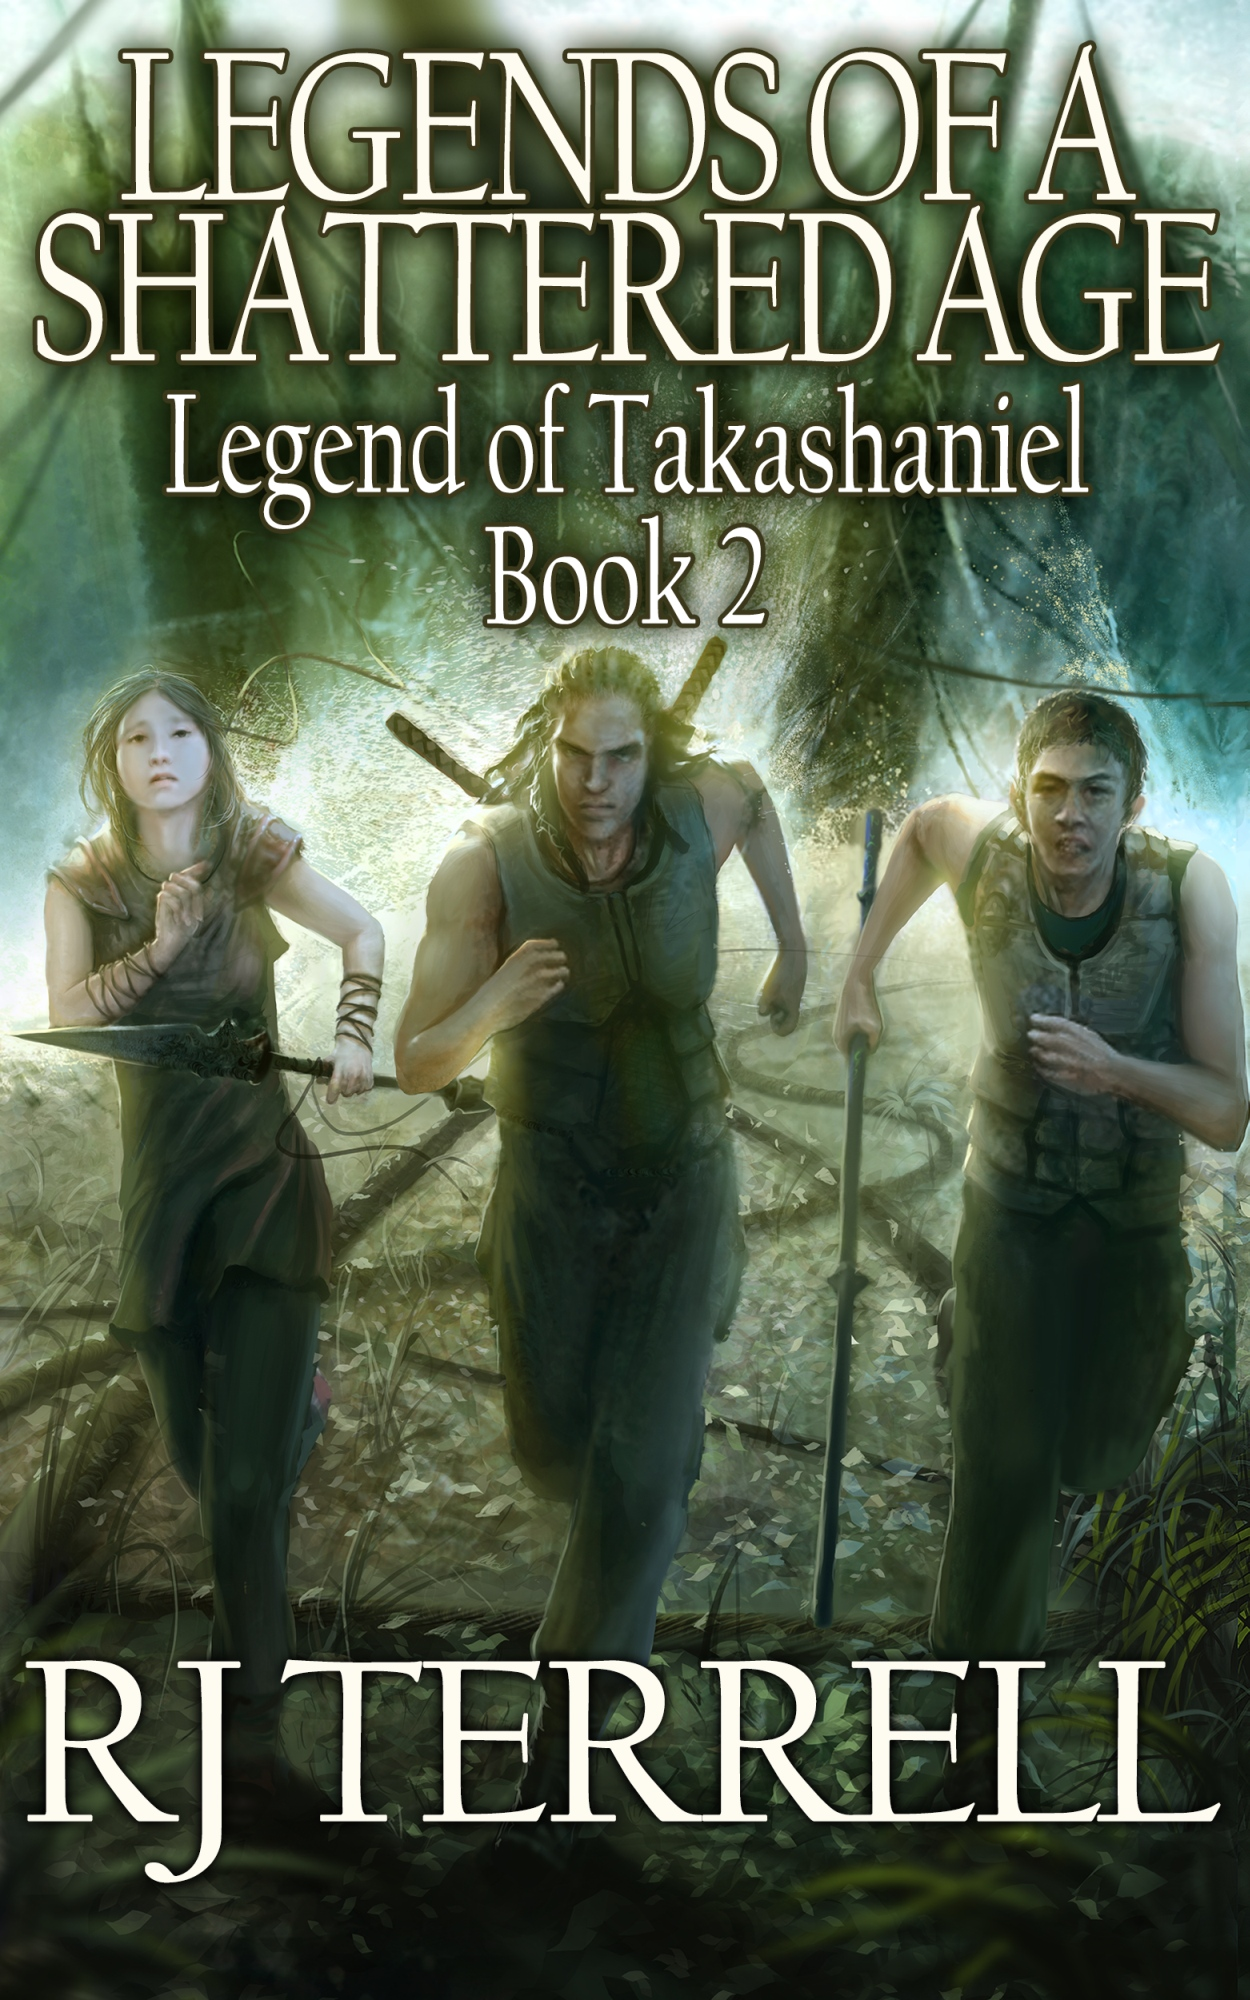 R. J. Terrell - Legends Of A Shattered Age (Legend of Takashaniel Trilogy, Book 2)